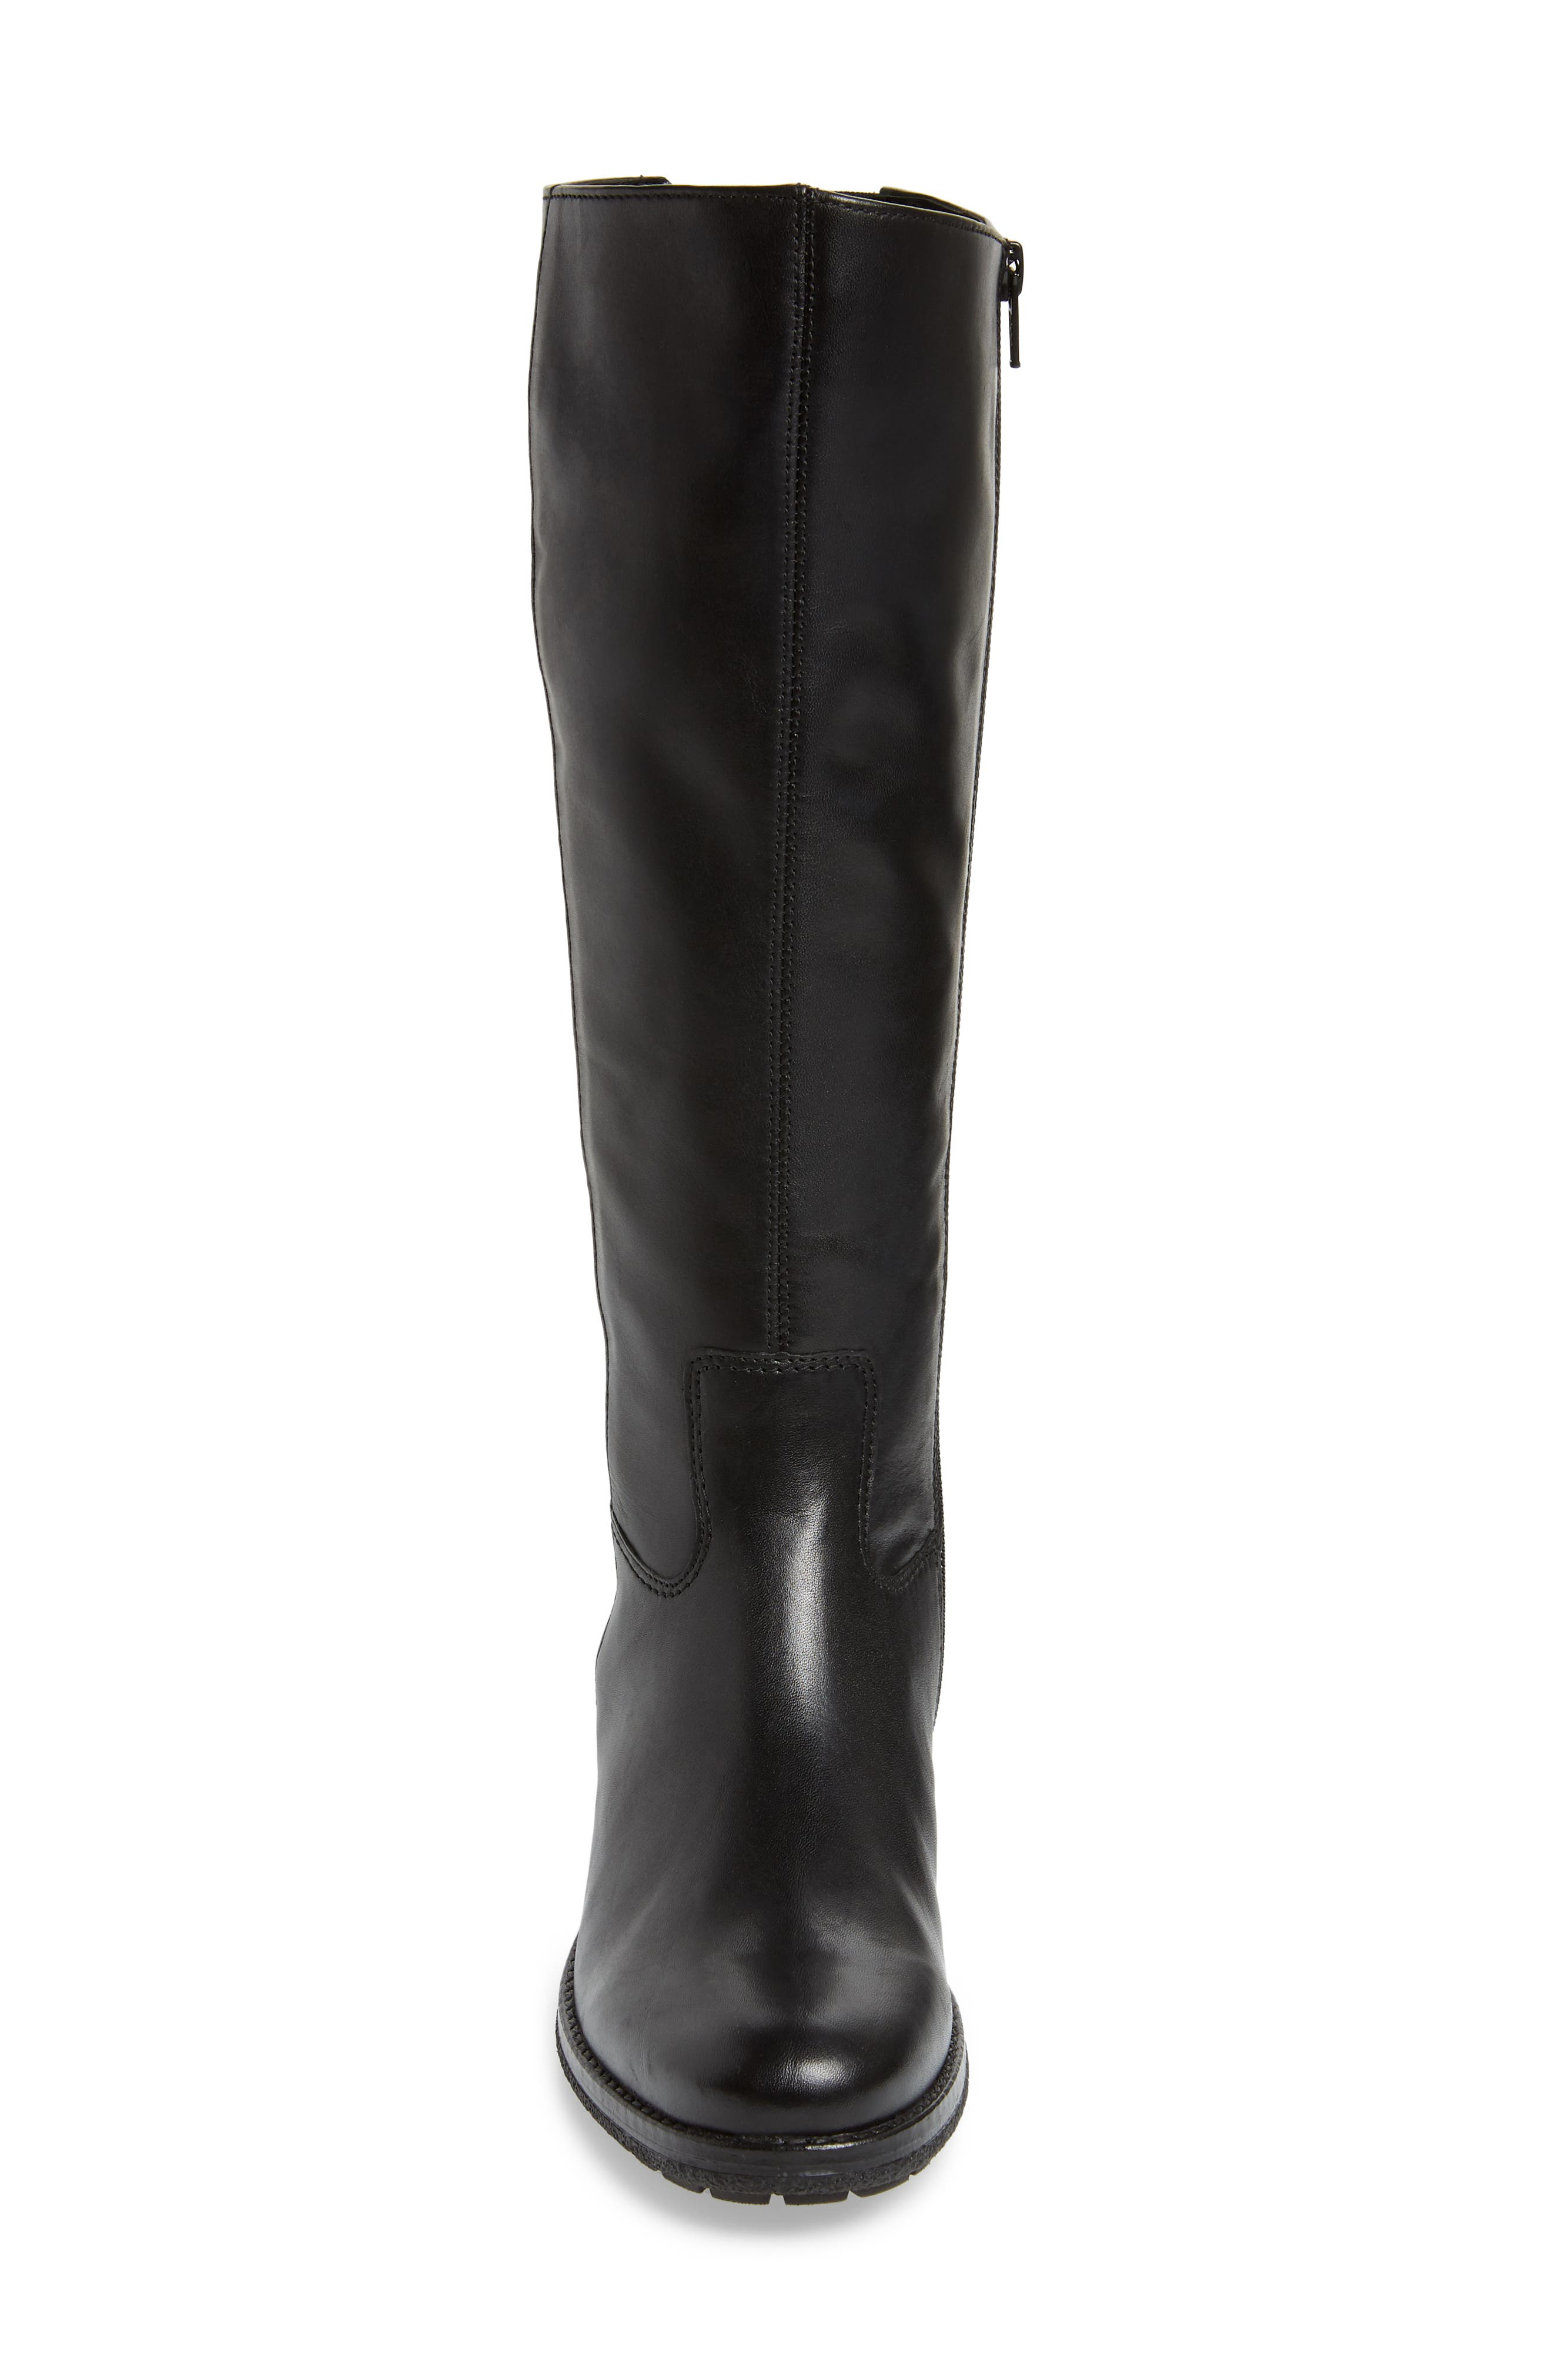 GABOR, Classic Comfort Knee High Riding Boot, Alternate thumbnail 4, color, BLACK LEATHER